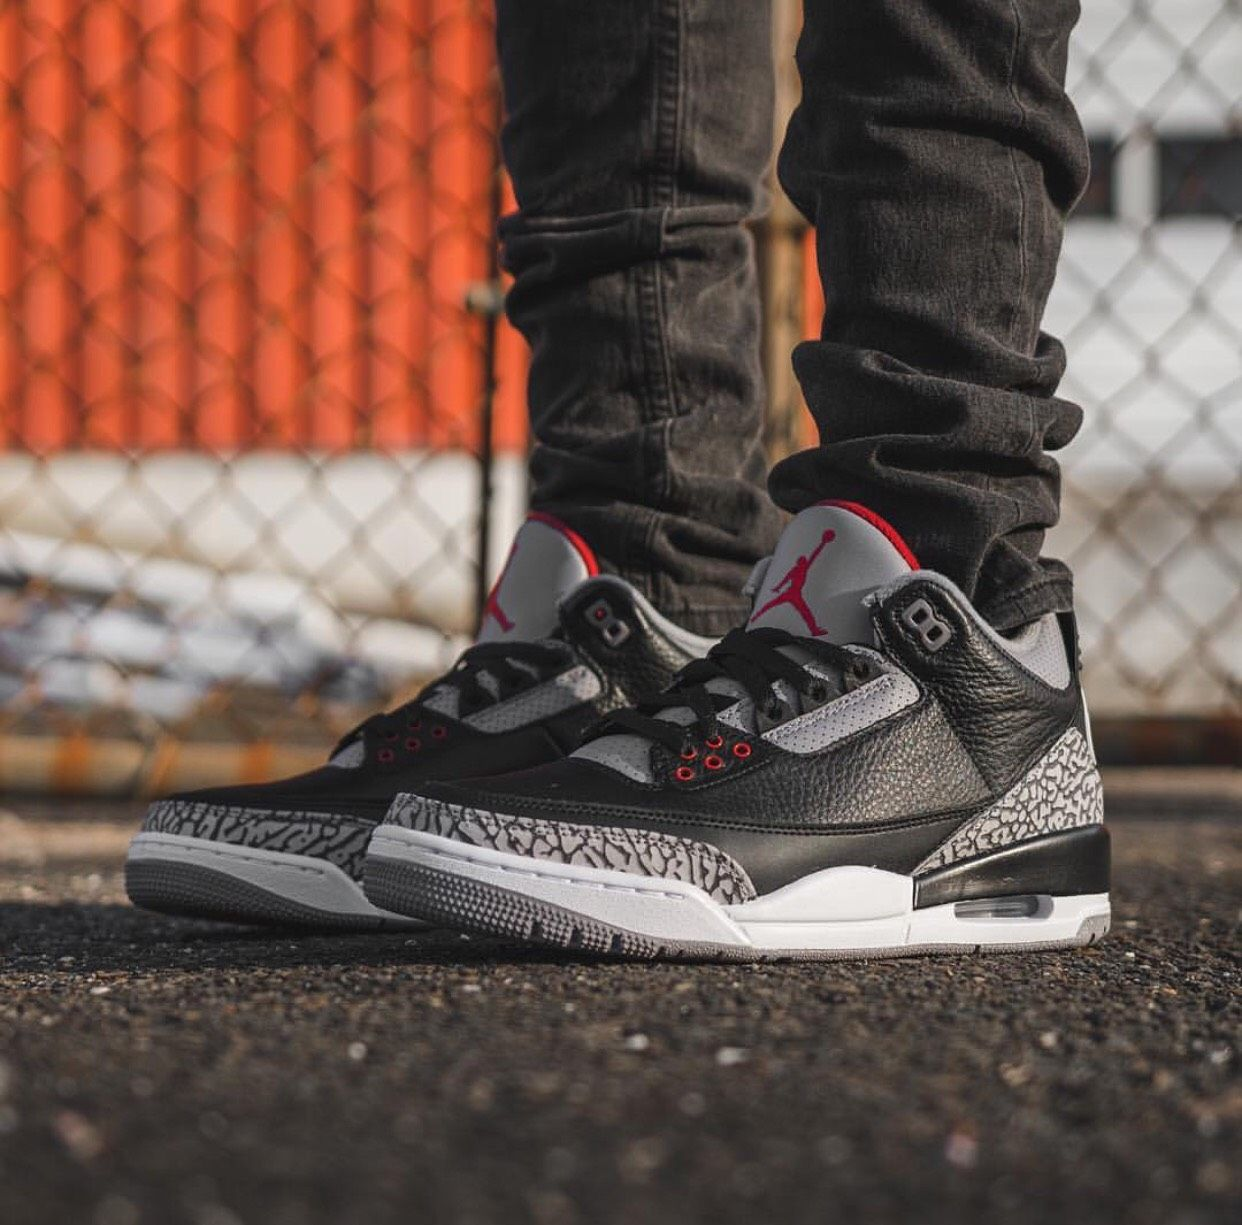 173b5b214ac1 On-feet look at the Air Jordan 3 Retro OG Black Cement that releases ...